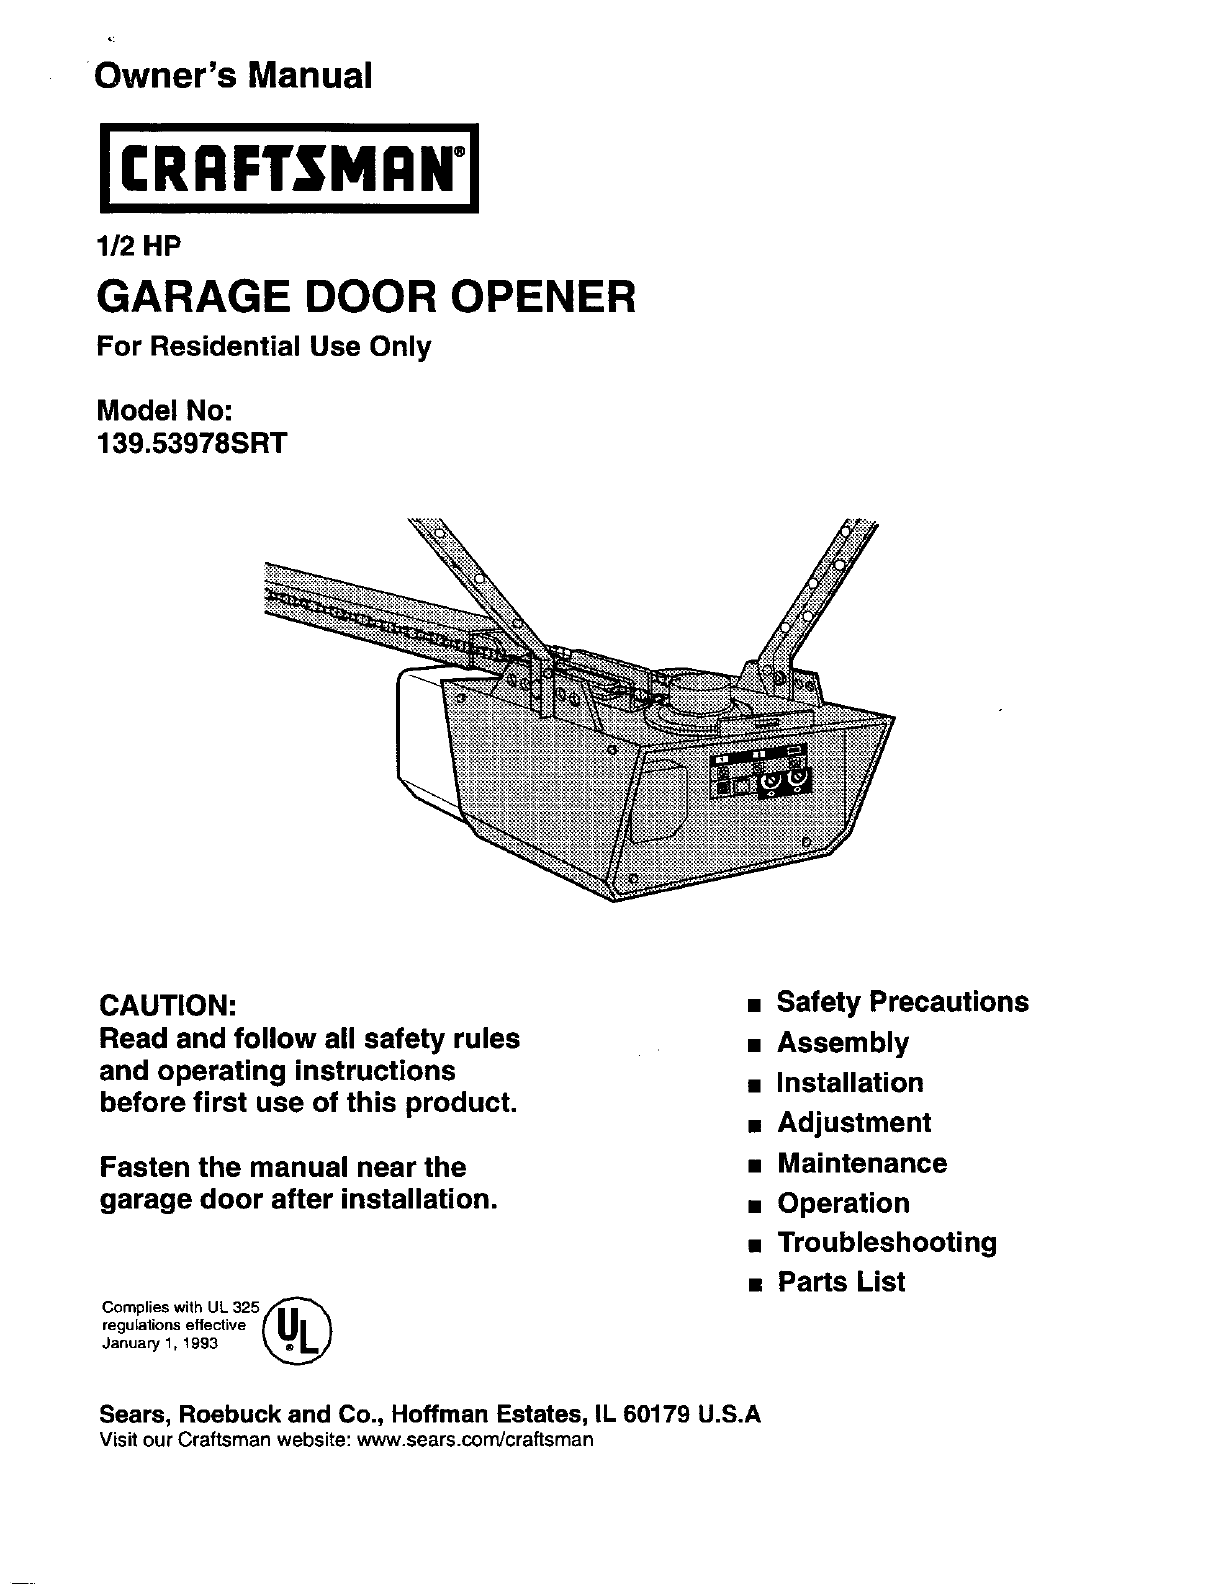 0f05b938 d0cb 4872 aeee 96ef63eab4f3 bg1 craftsman garage door opener 139 53978srt user guide craftsman garage door wiring diagram at eliteediting.co